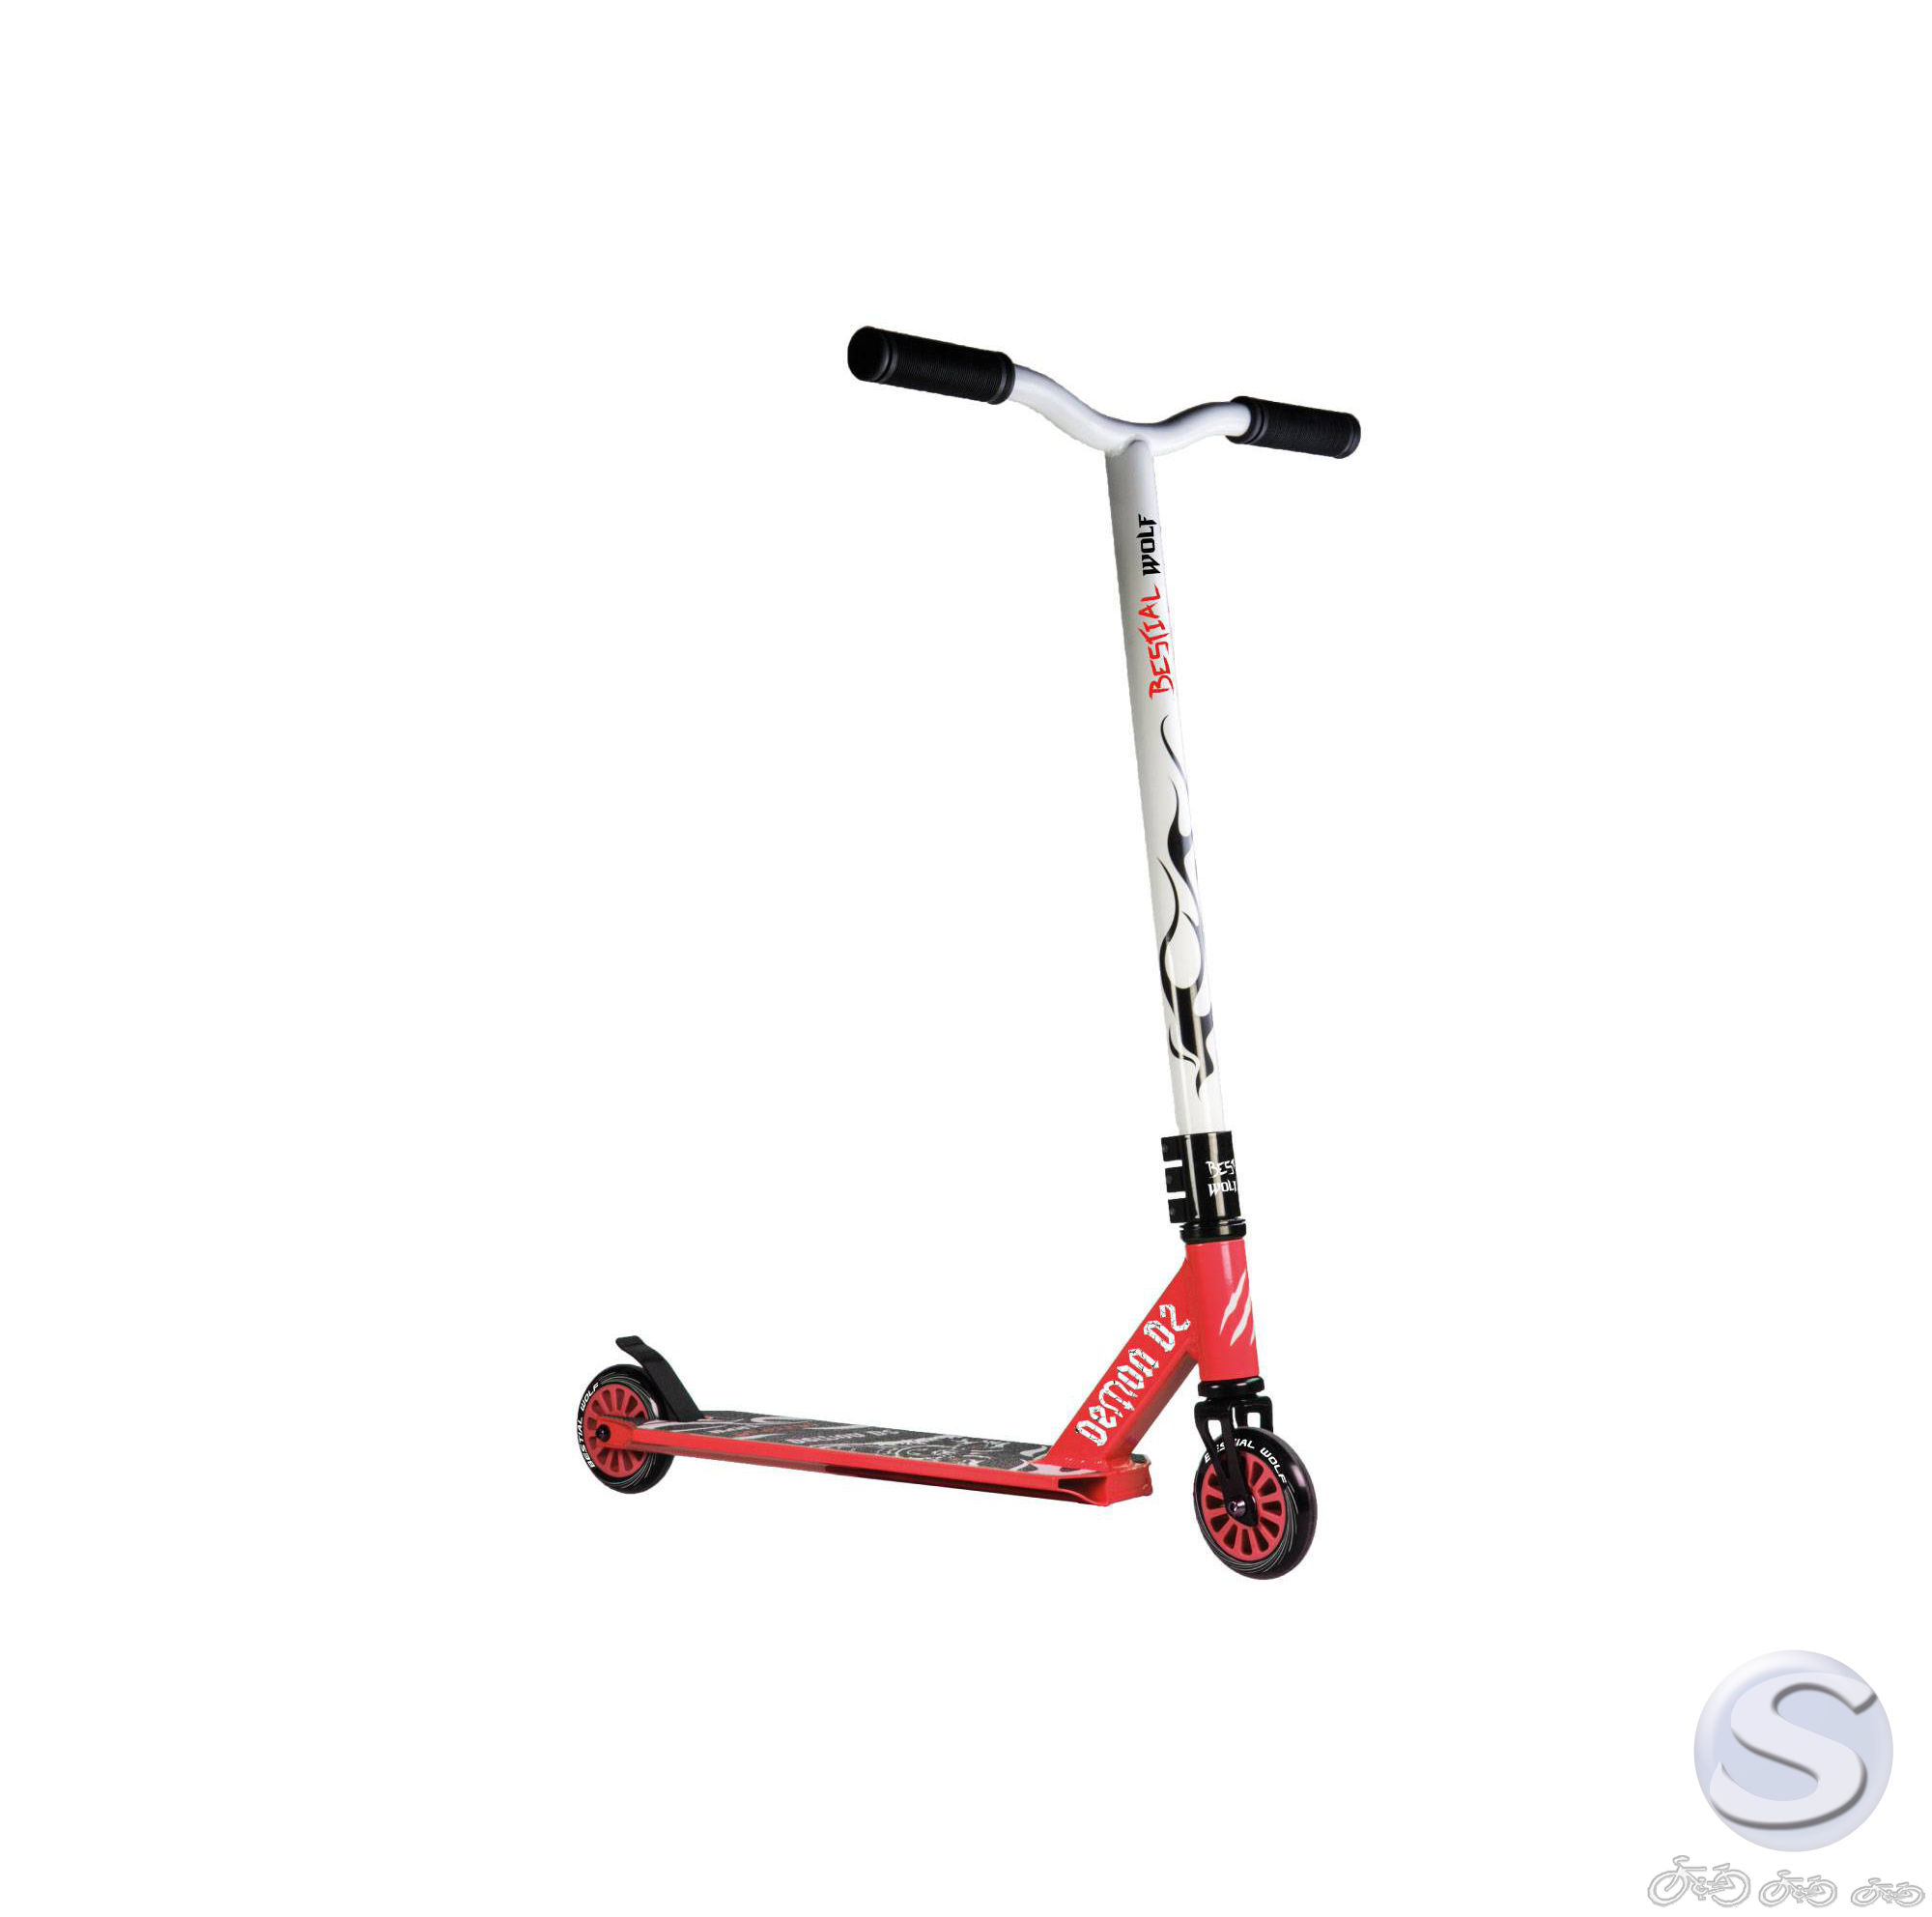 Scooter Bestial Wolf Demon D2 en varios colores